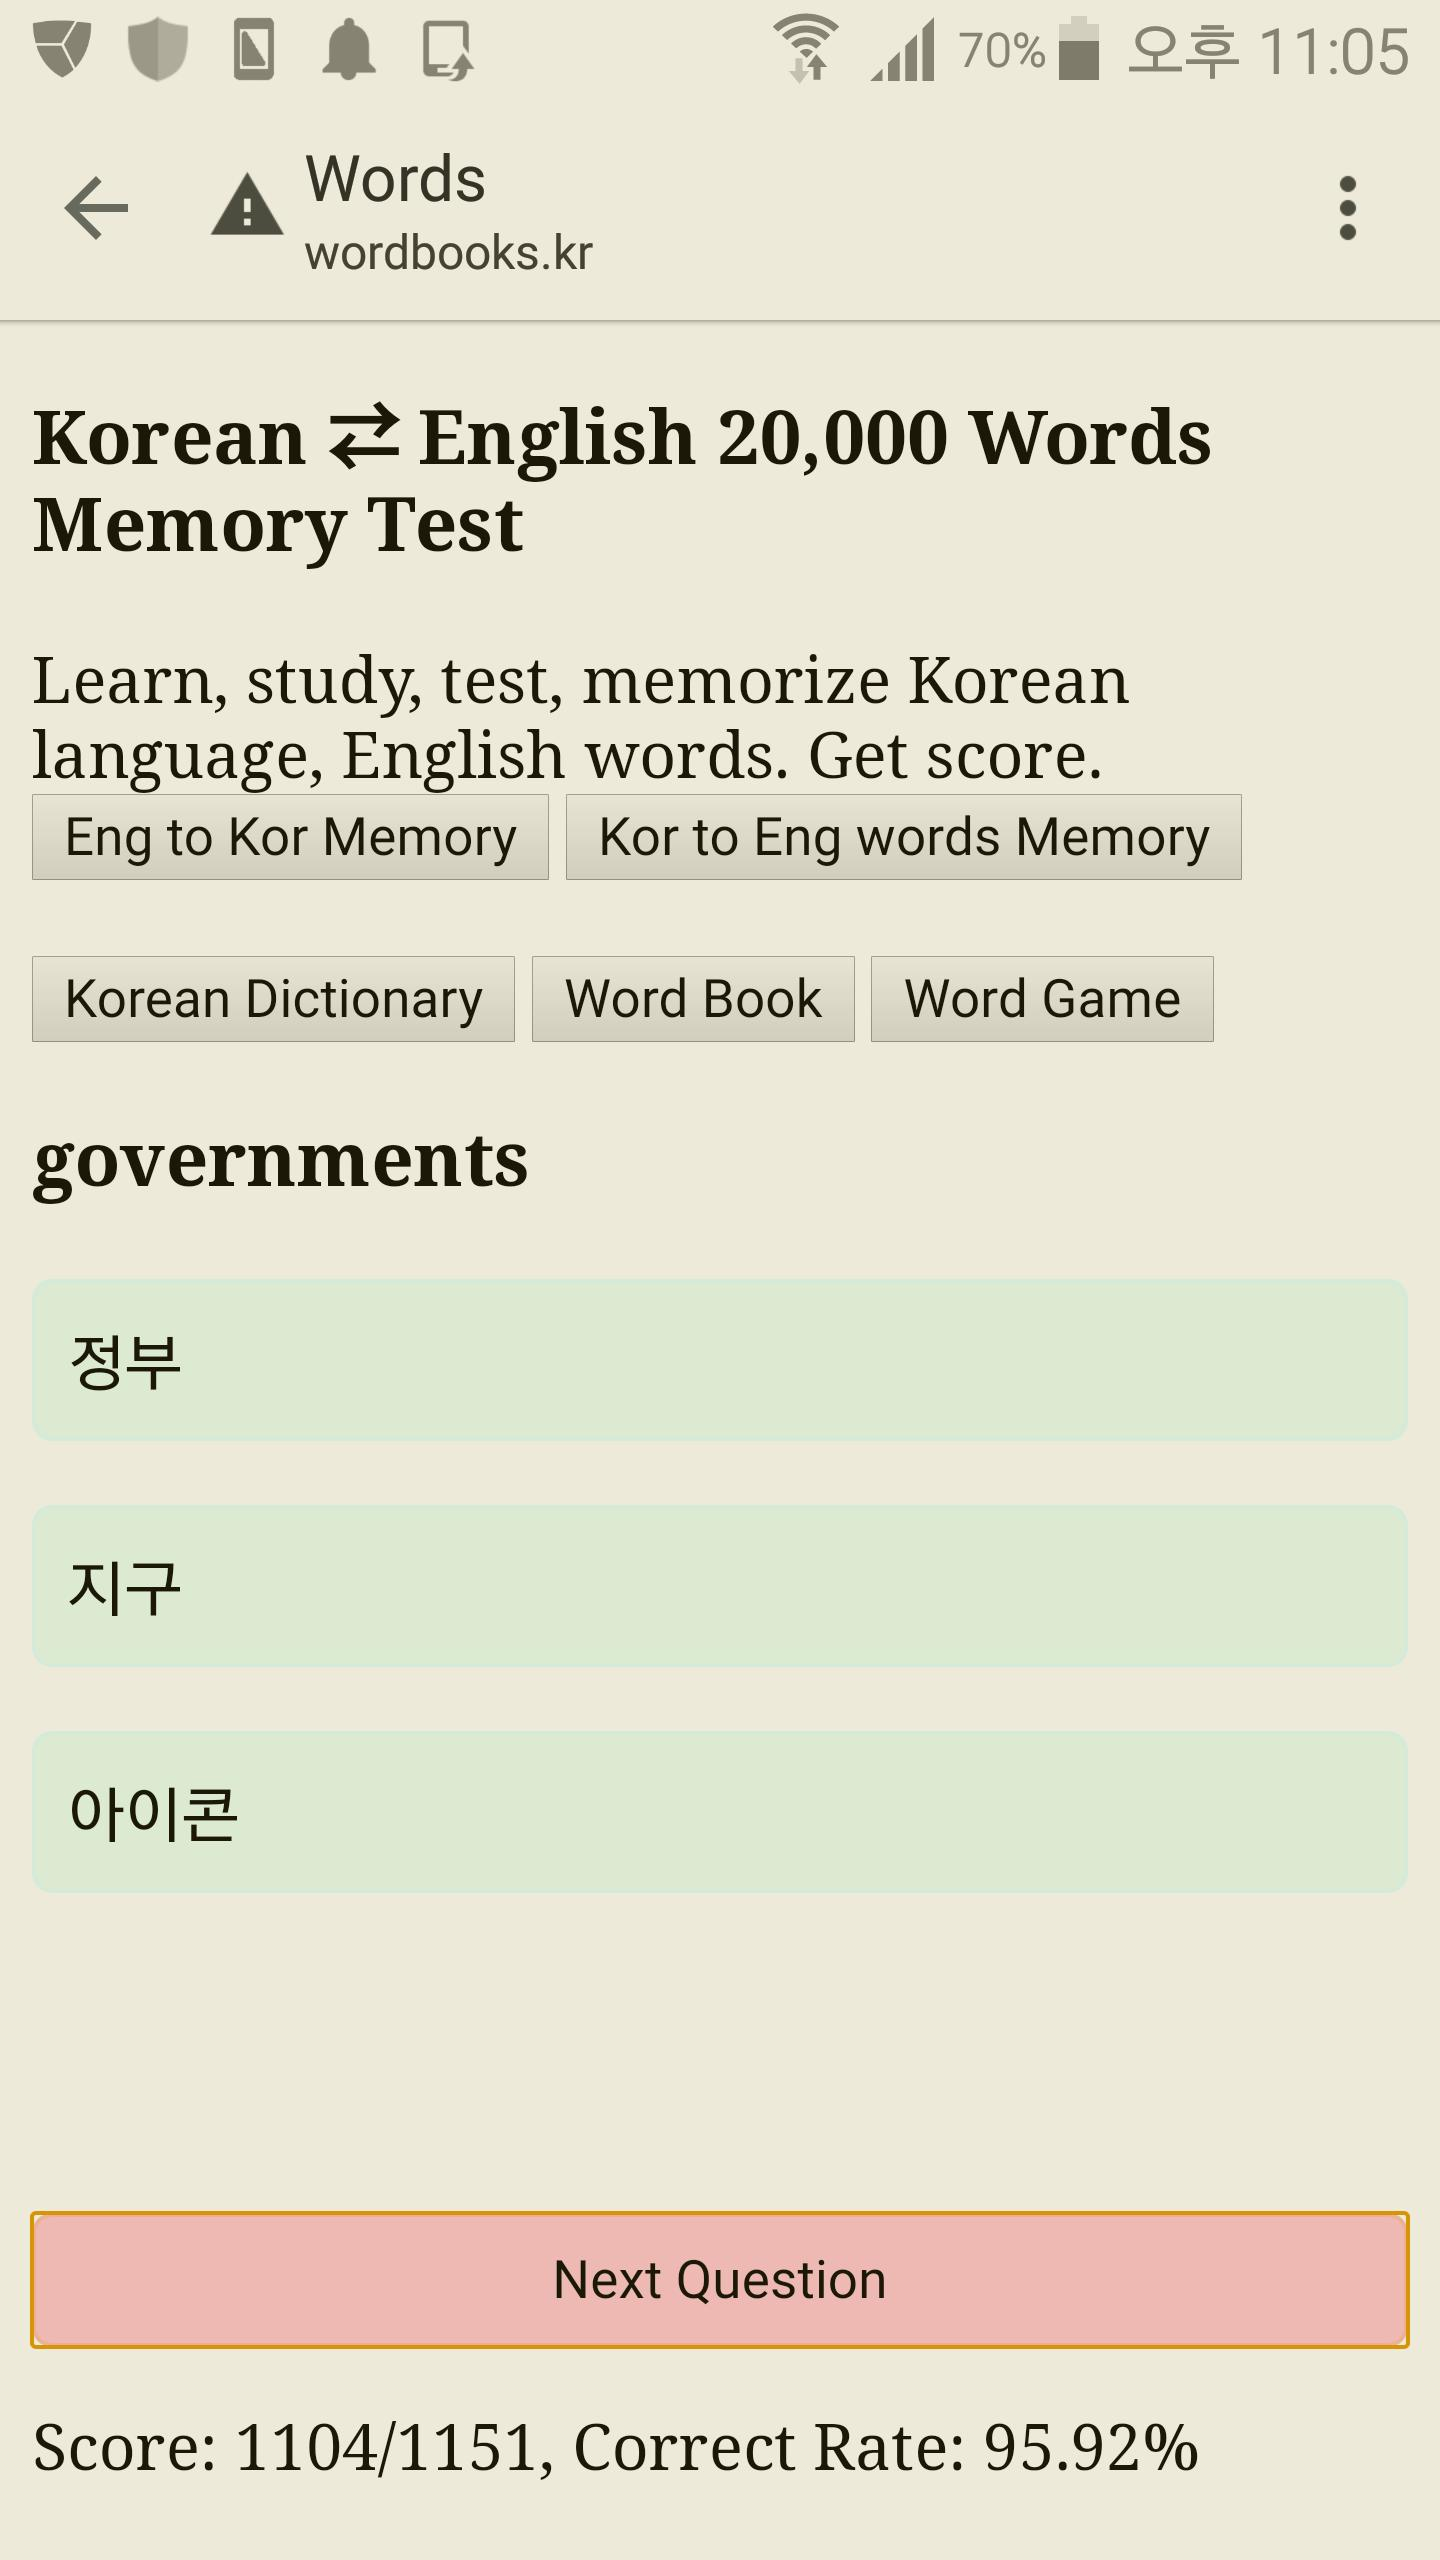 Memorize Korean to English Words - Quiz test for Android